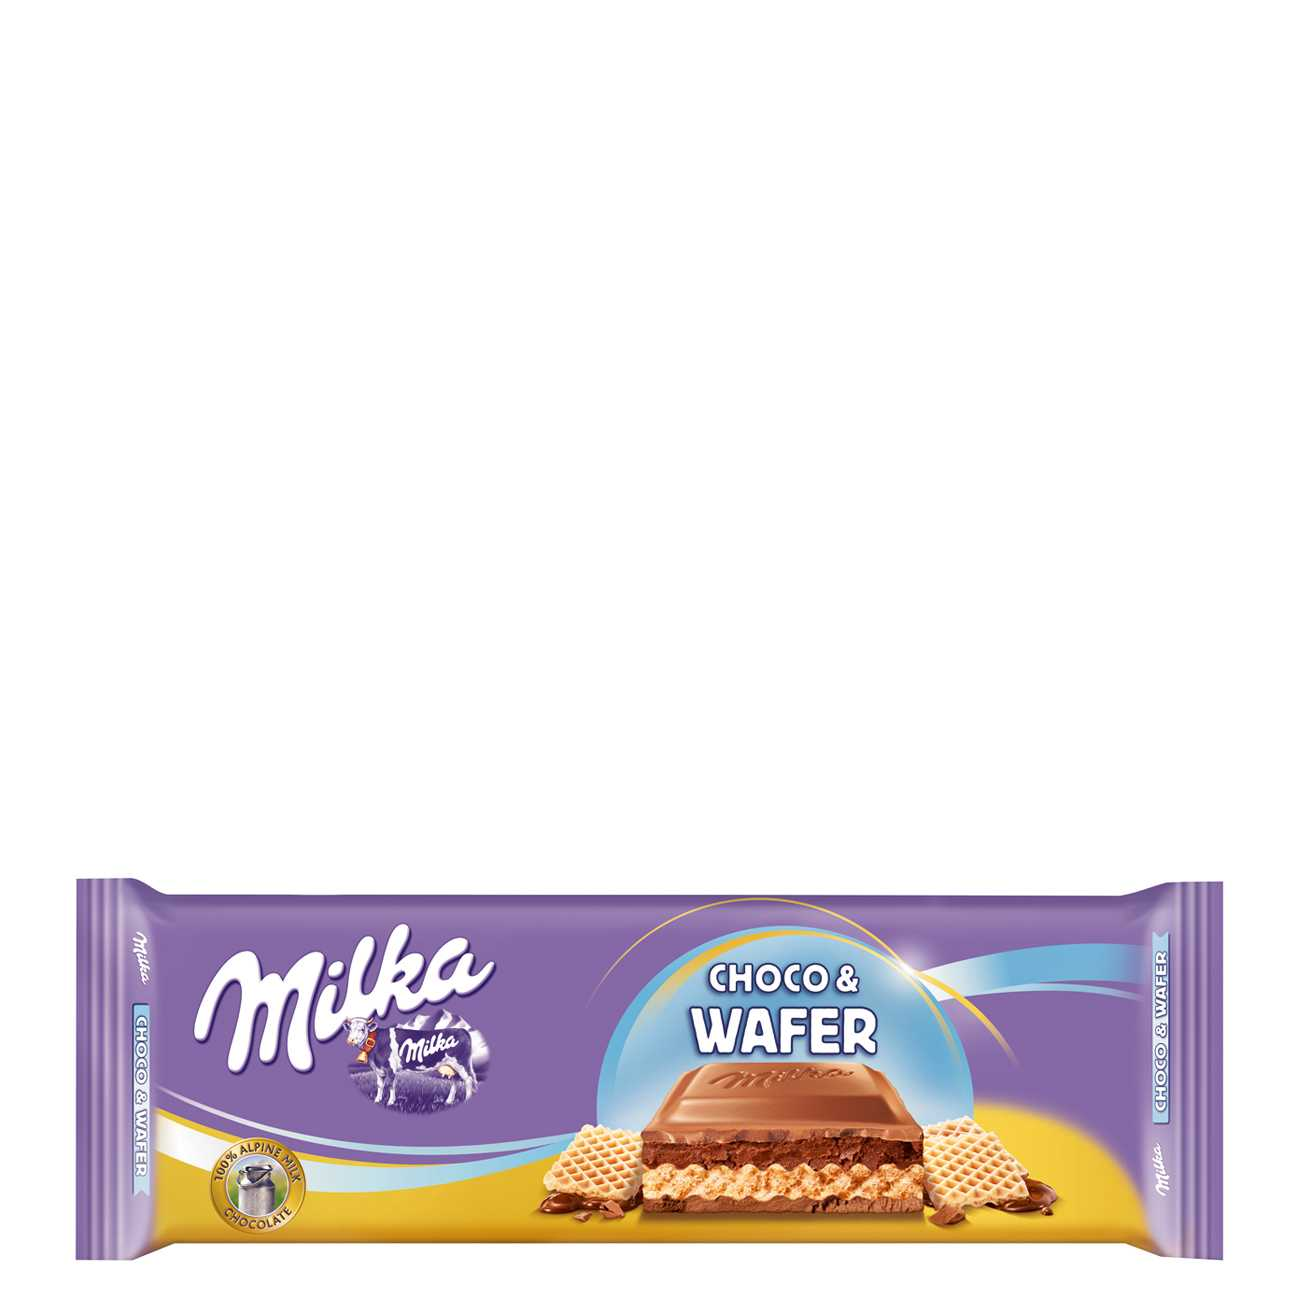 CHOCO&WAFER 300 G